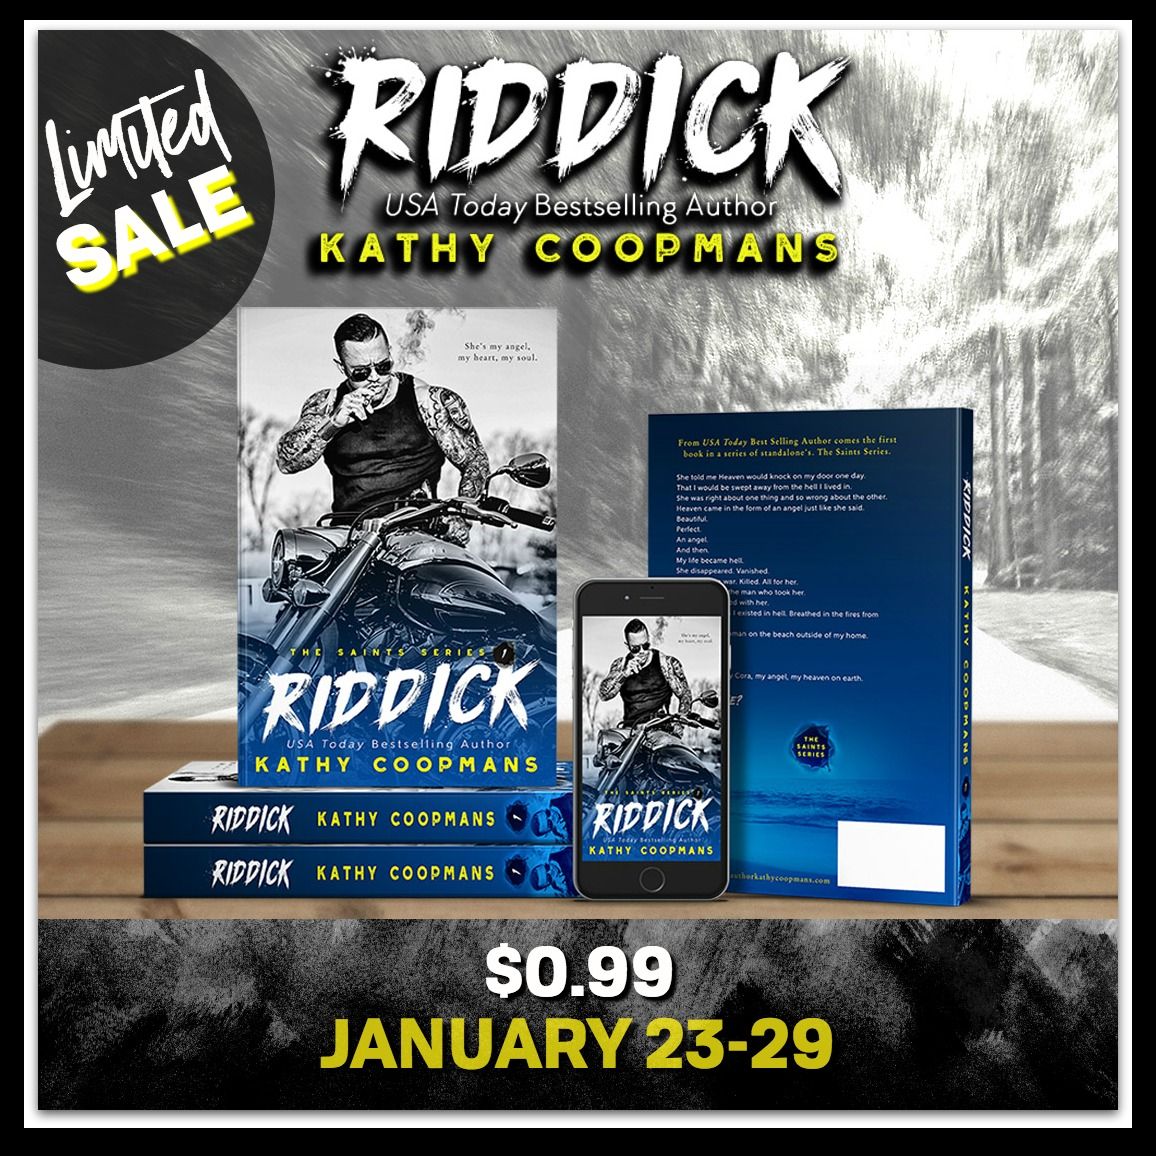 Riddick Release week price Photo IG (1).jpg